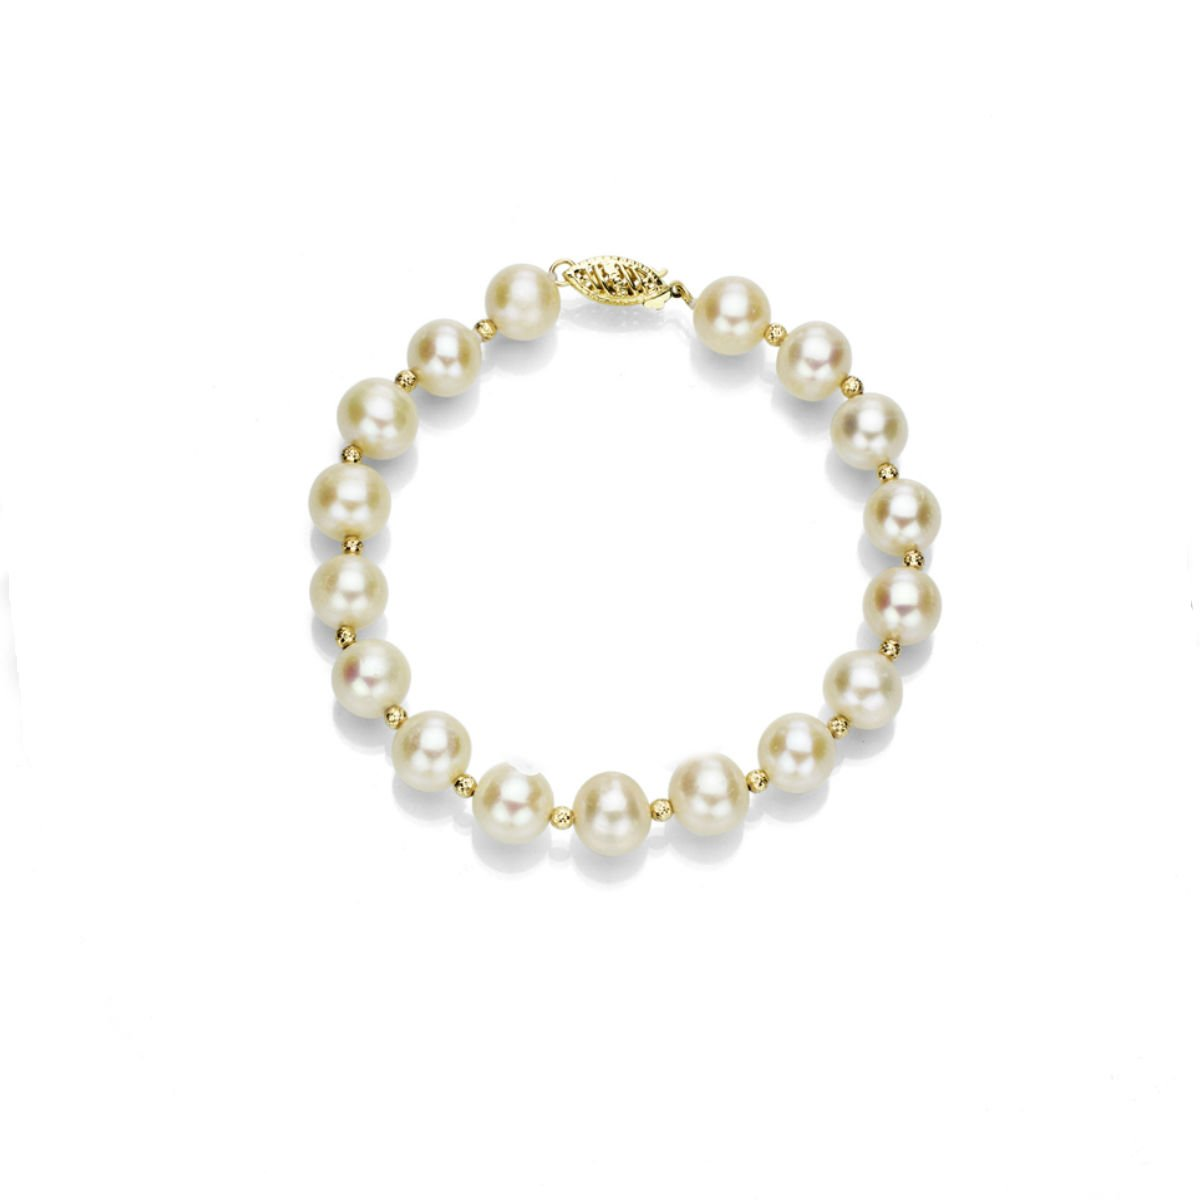 14k Yellow Gold 7-7.5mm White Freshwater Cultured Pearl Bracelet with 3mm Sparkling Gold Beads, 7.25''